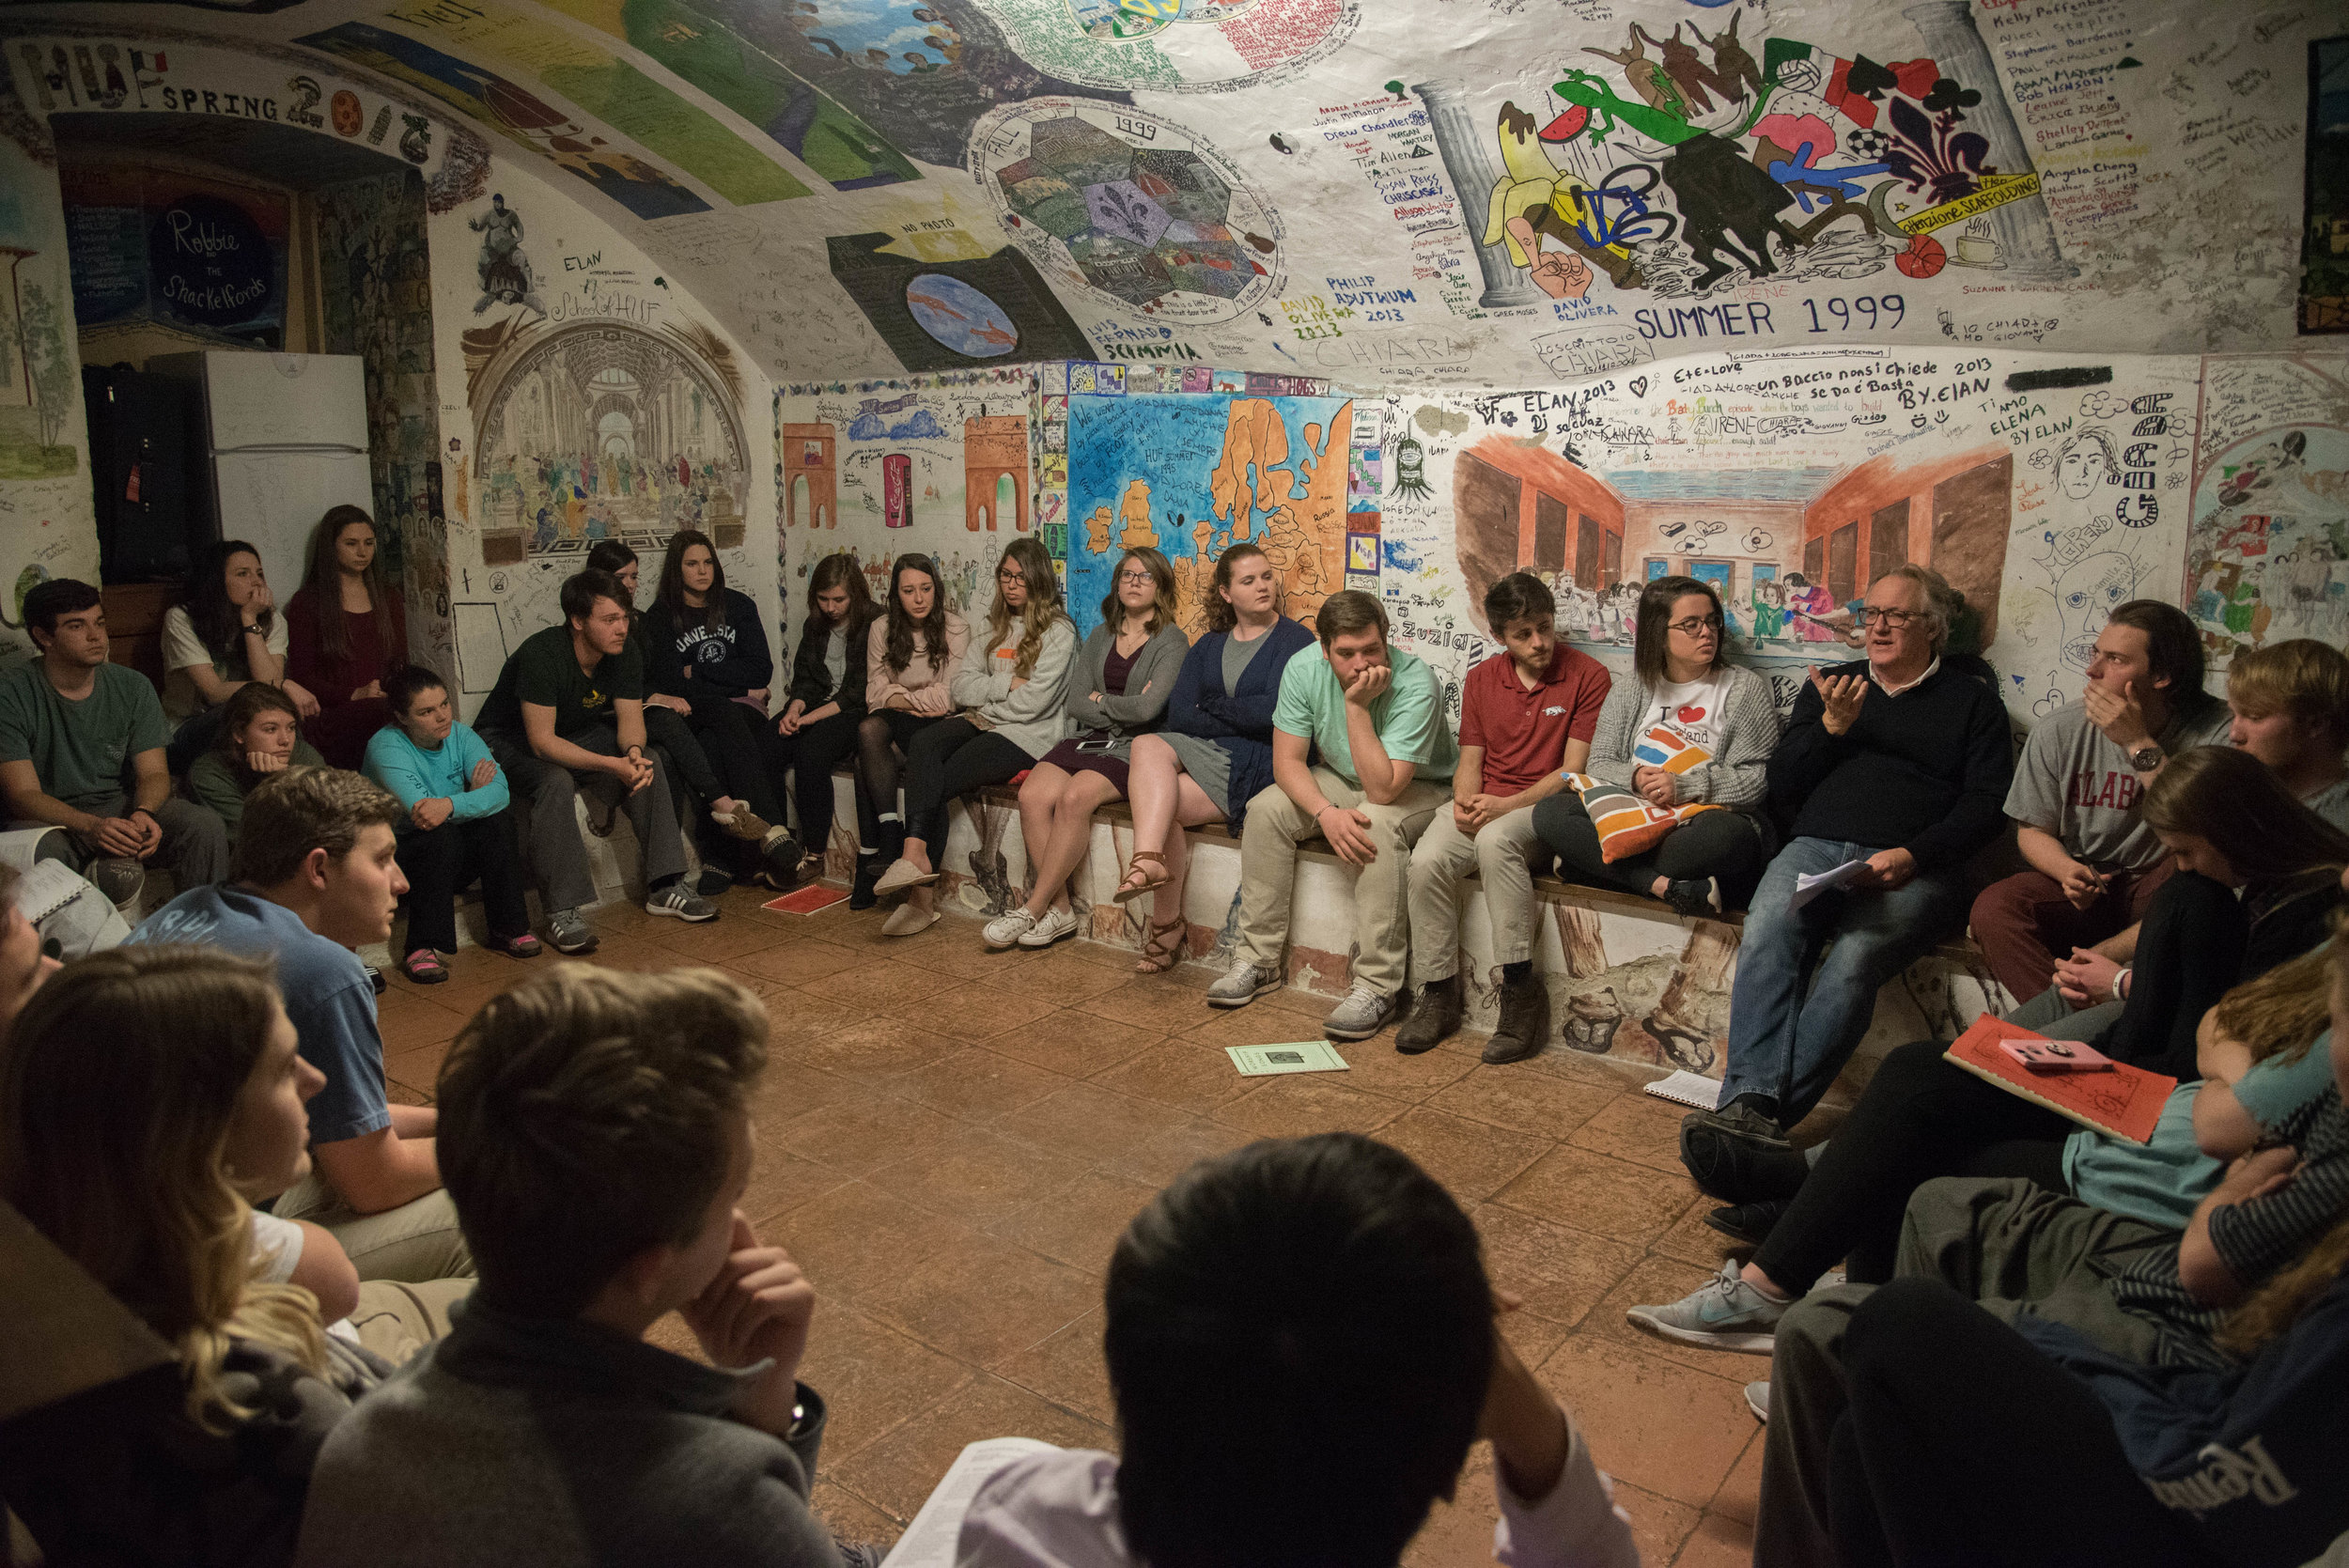 A time of worship is a part of every day in the HUF program. Last night we worshiped together with song in the cellar of the Villa. The walls of the cellar are painted with murals done by past HUFgroups dating back to the early 1990's.